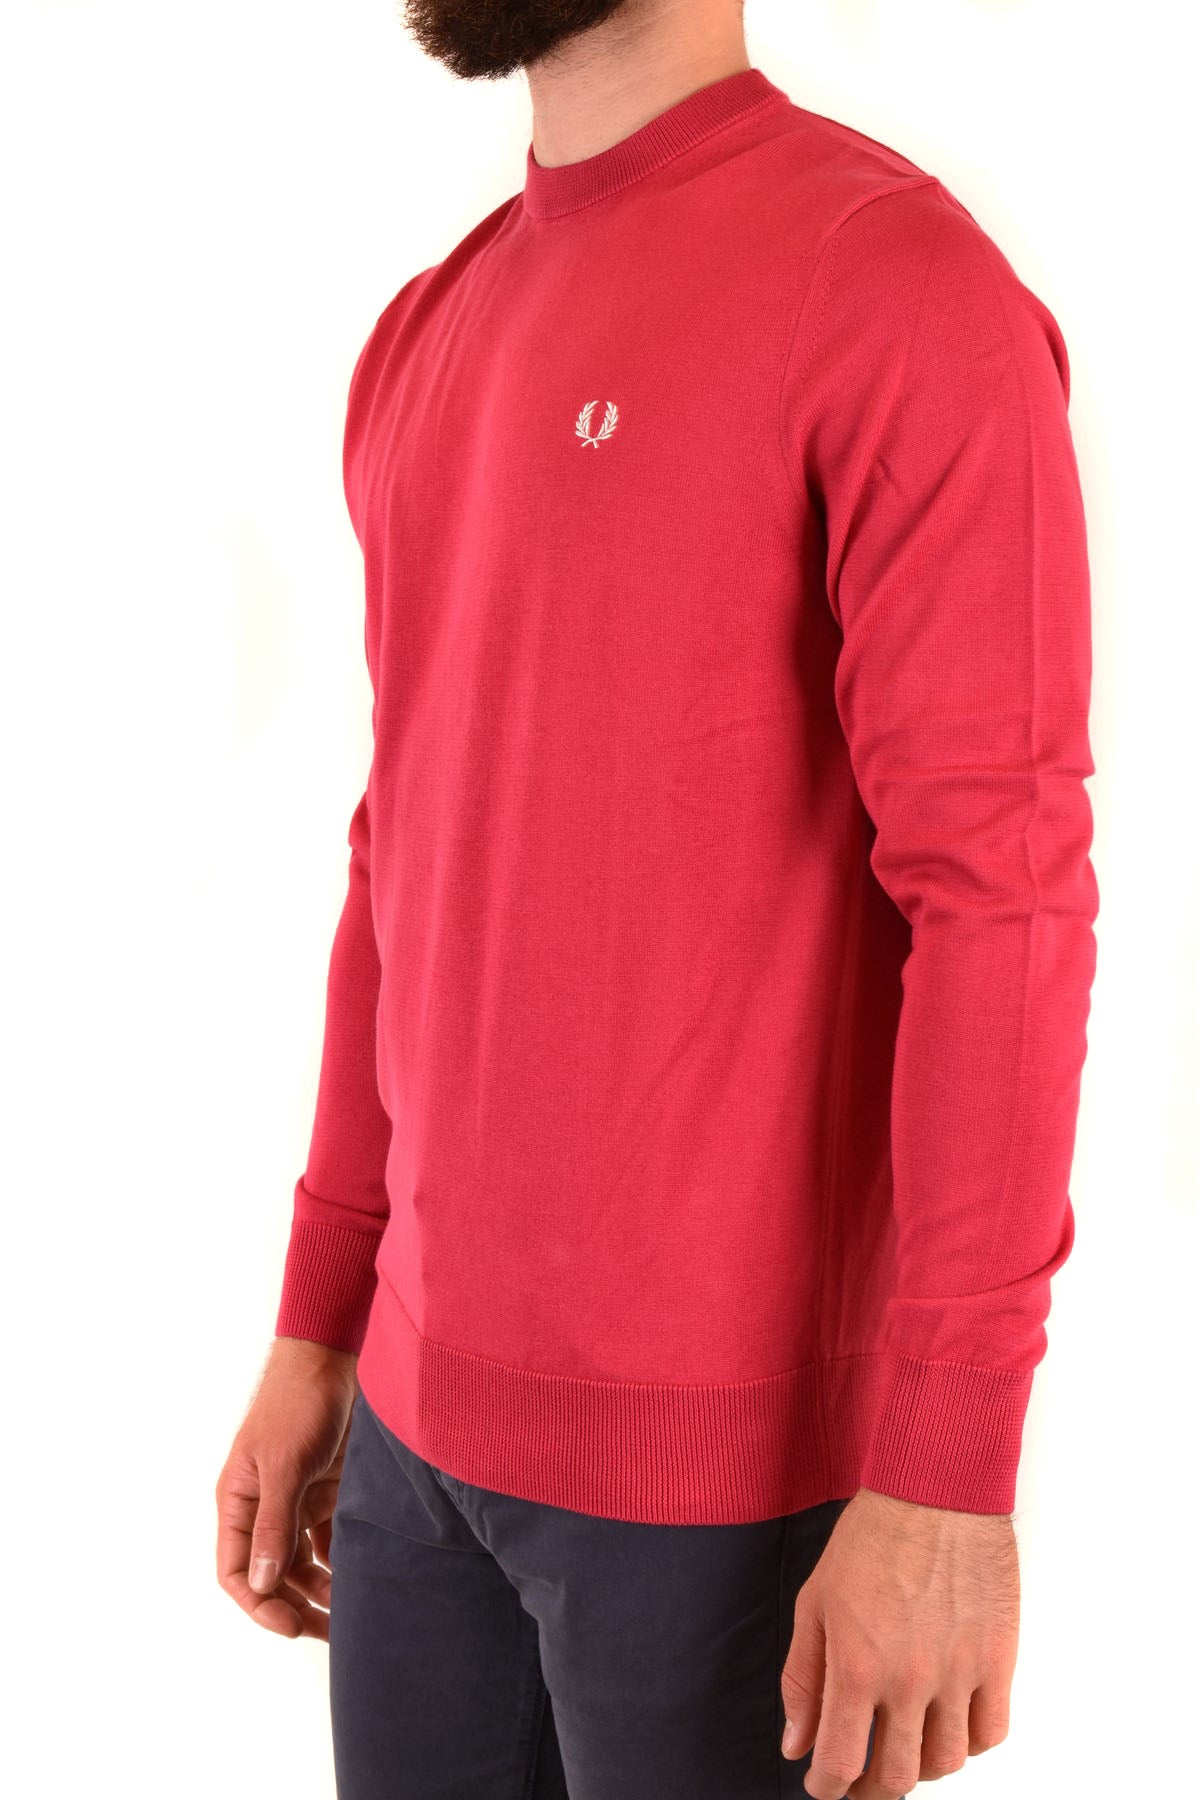 Sweater Fred Perry-Men's Fashion - Men's Clothing - Hoodies & Sweatshirts-Product Details Manufacturer Part Number: 7015557A8.V0036Year: 2020Composition: Cotton 100%Size: IntGender: ManMade In: ChinaSeason: Fall / WinterMain Color: RedClothing Type: Sweater Terms: New With Label-Keyomi-Sook